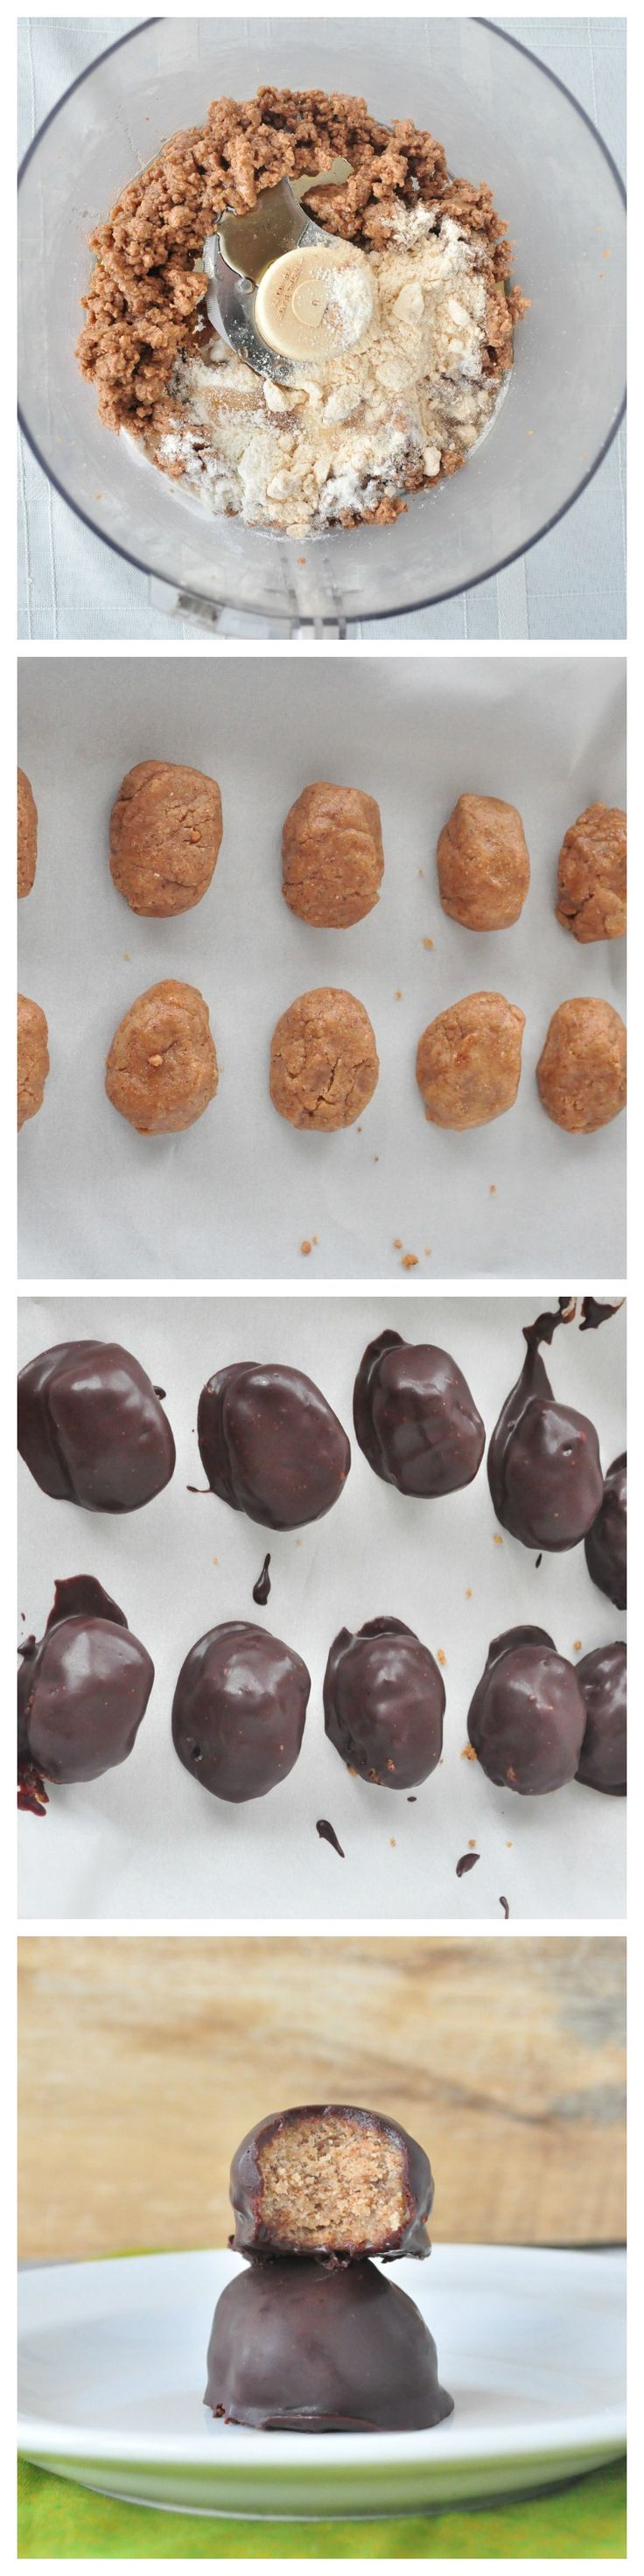 """Copycat Reese's """"Peanut Butter"""" Eggs. All you need is 5 ingredients to make a healthier, homemade version of the Reese's egg. #vegan #glutenfree #paleo #chocolate #desserts"""